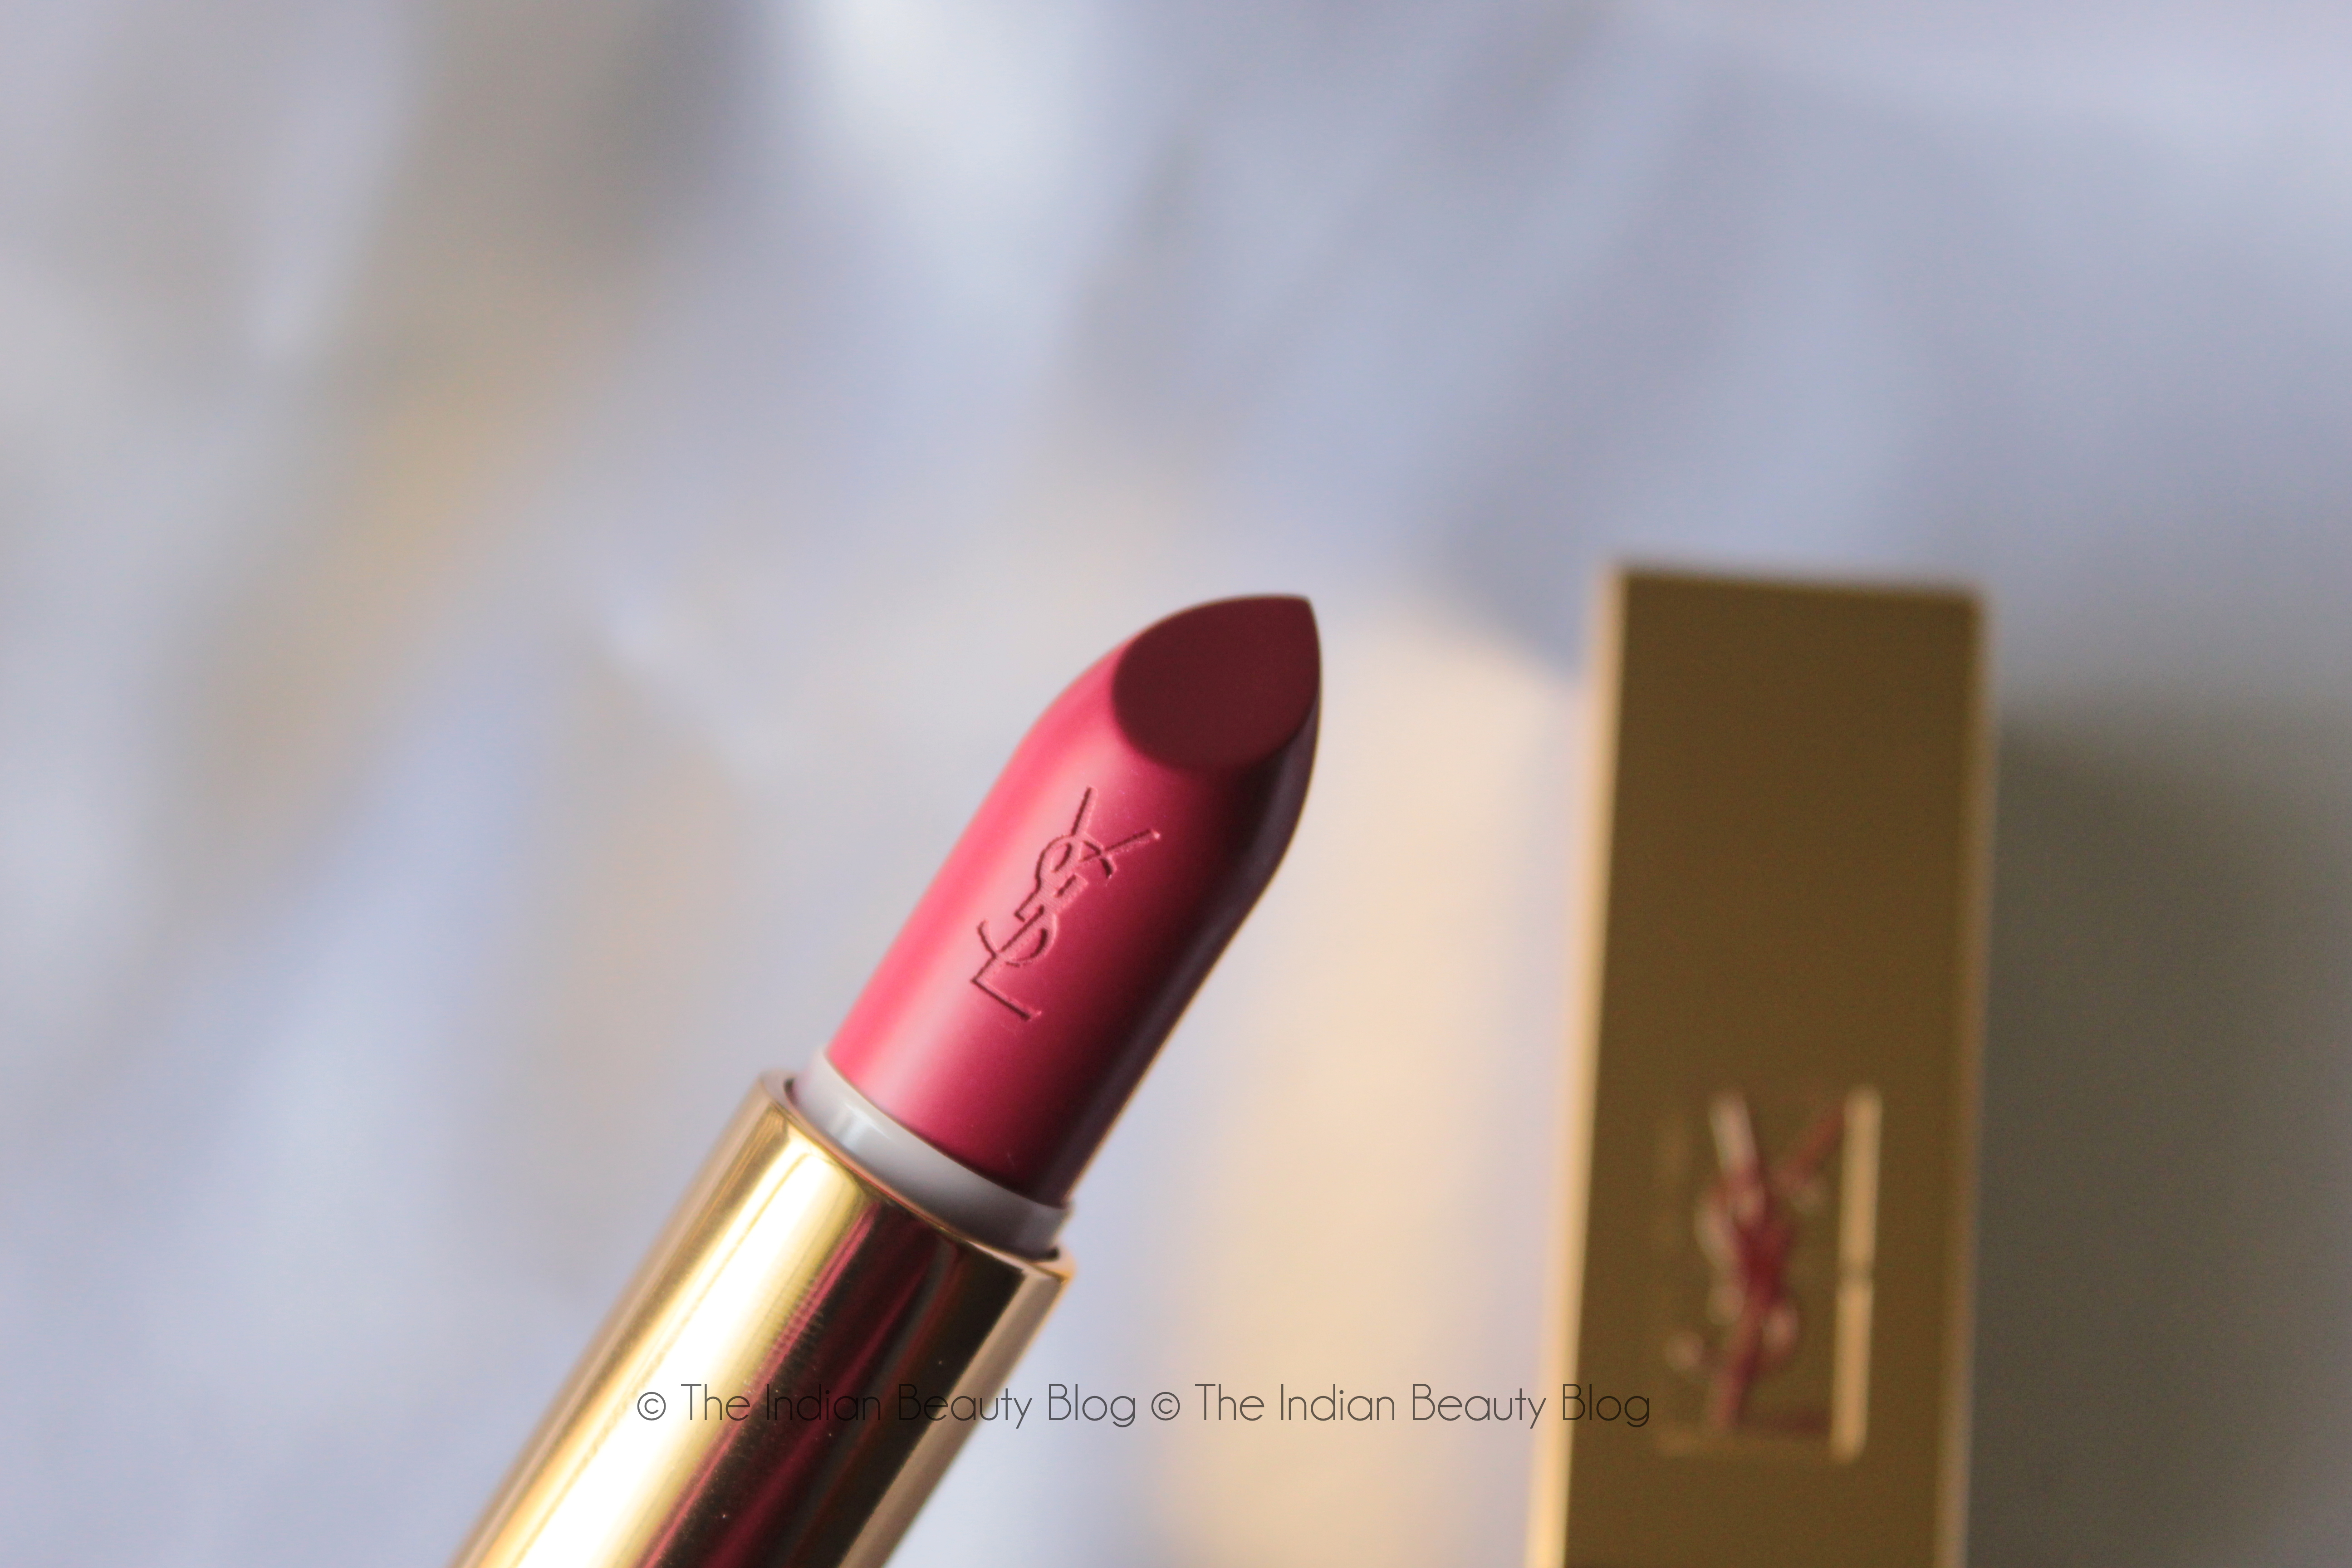 ysl rouge pur couture lipstick 60 the indian beauty blog. Black Bedroom Furniture Sets. Home Design Ideas